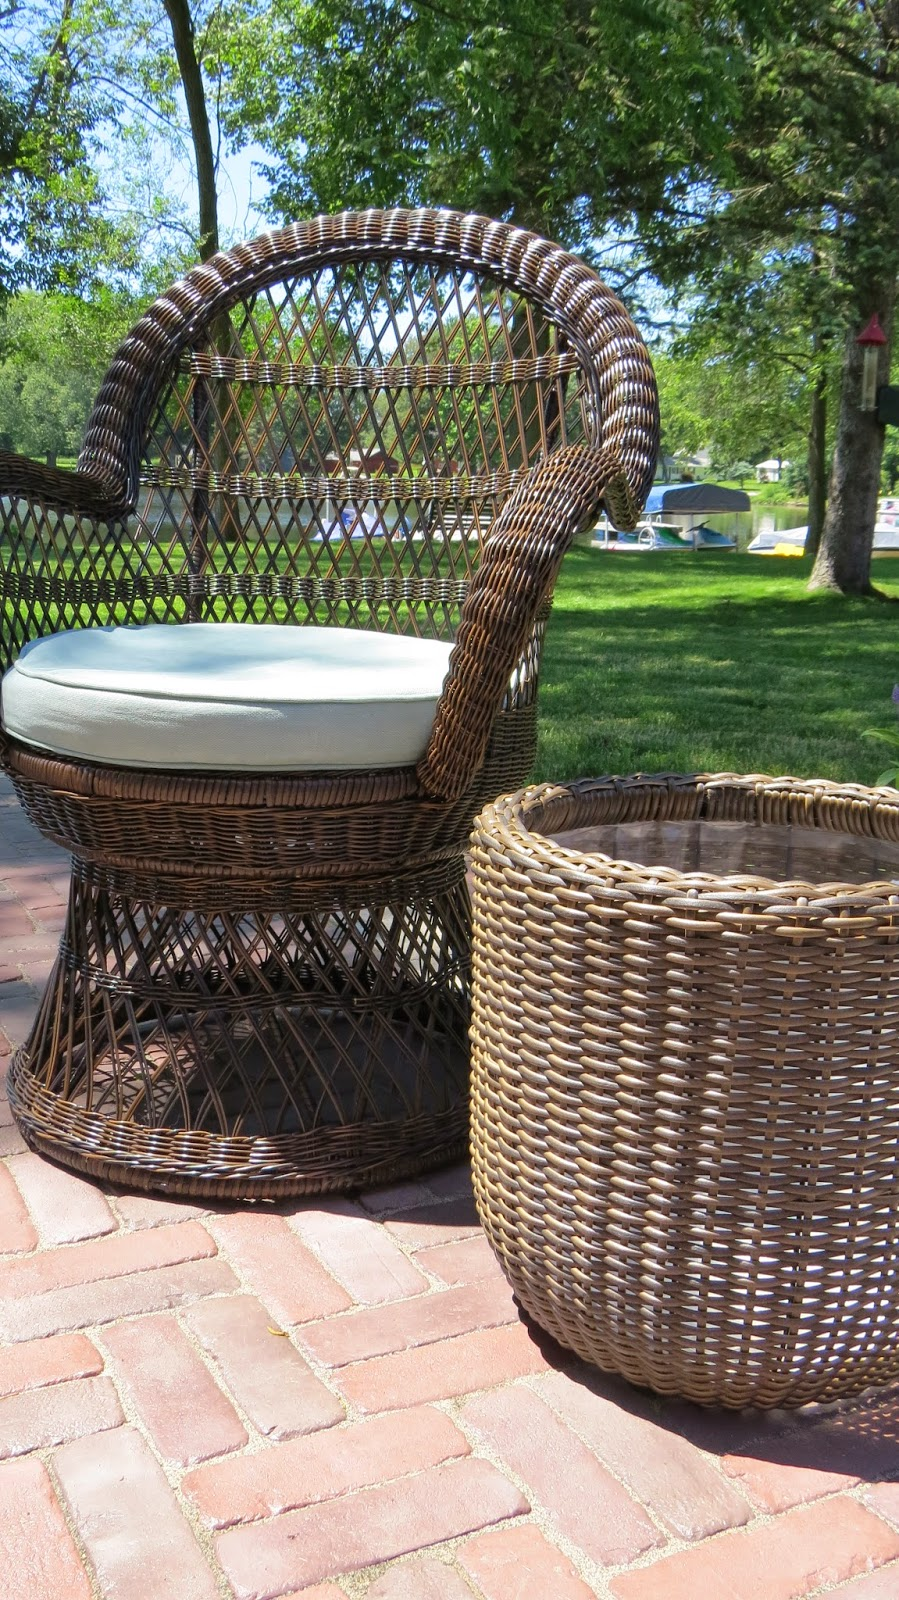 Pier 1 Imports Wicker Swivel Chair, Wicker Planter from JoAnns, Patio